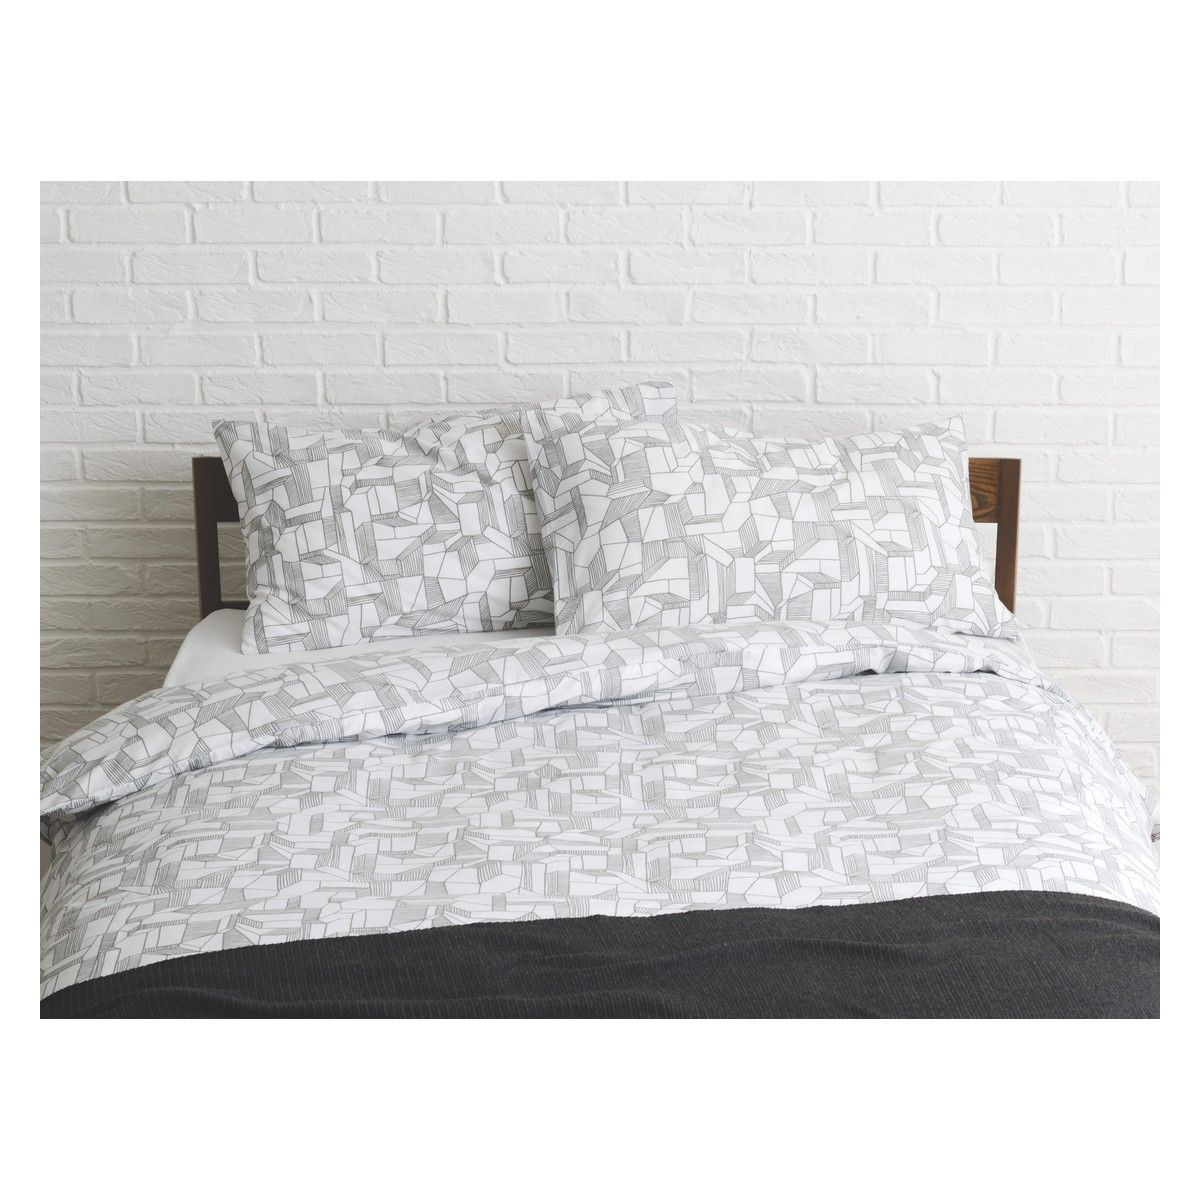 MINERAL Grey patterned double duvet cover set | Buy now at Habitat UK